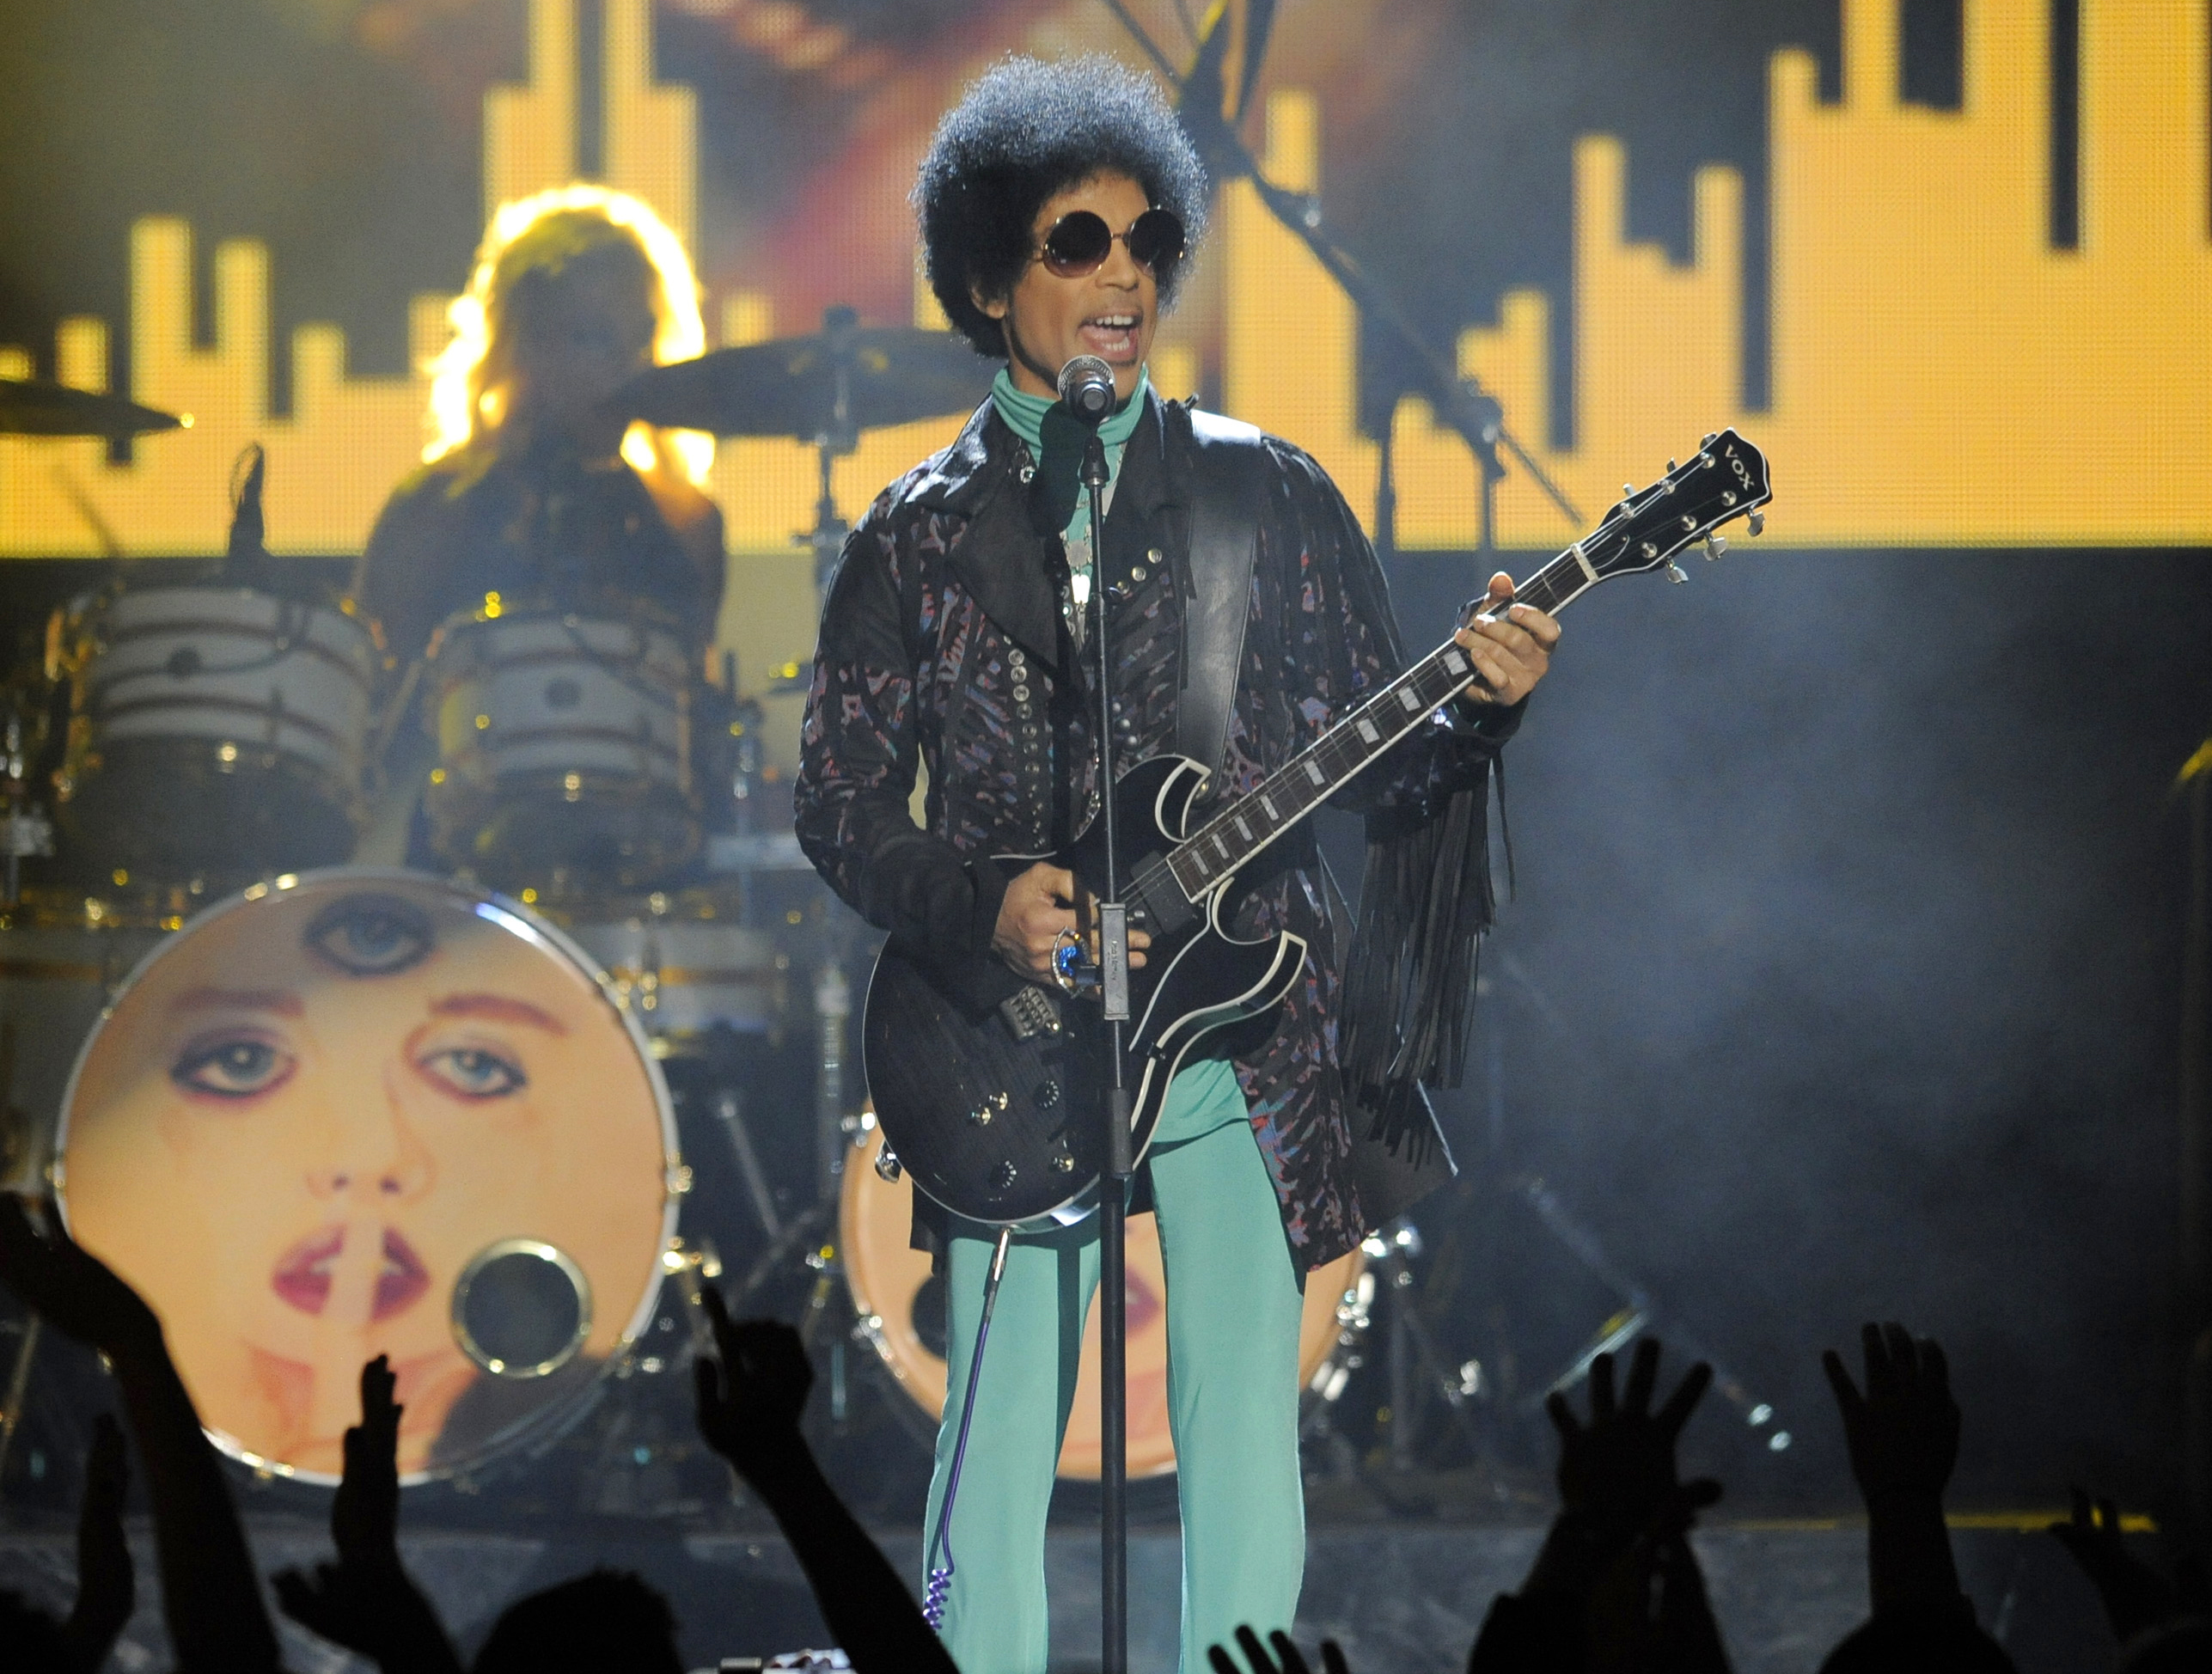 FILE - In this May 19, 2013 file photo, Prince performs at the Billboard Music Awards at the MGM Grand Garden Arena in Las Vegas. Drug overdose deaths in the U.S. skyrocketed 21 percent in 2016, dragging down life expectancy predictions for a second straight year, according to a report released by the Centers for Disease Control and Prevention on Thursday, Dec. 21, 2017. (Photo by Chris Pizzello/Invision/AP, File)